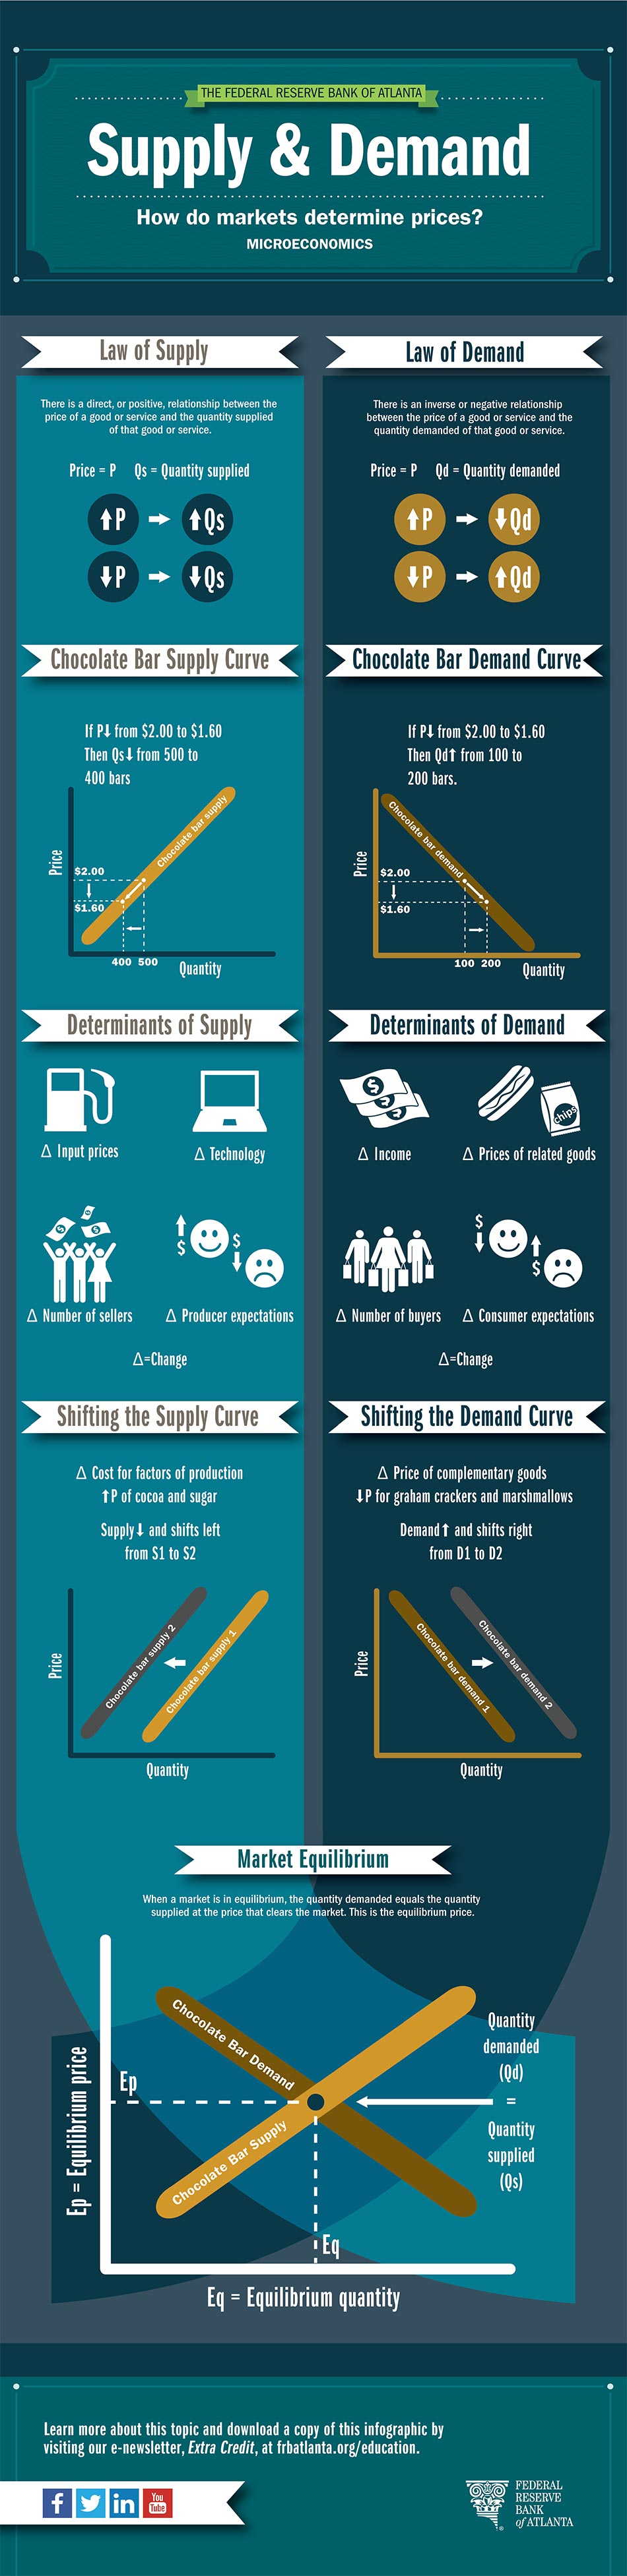 pin by netnapit tasakorn on infographic economy thailand